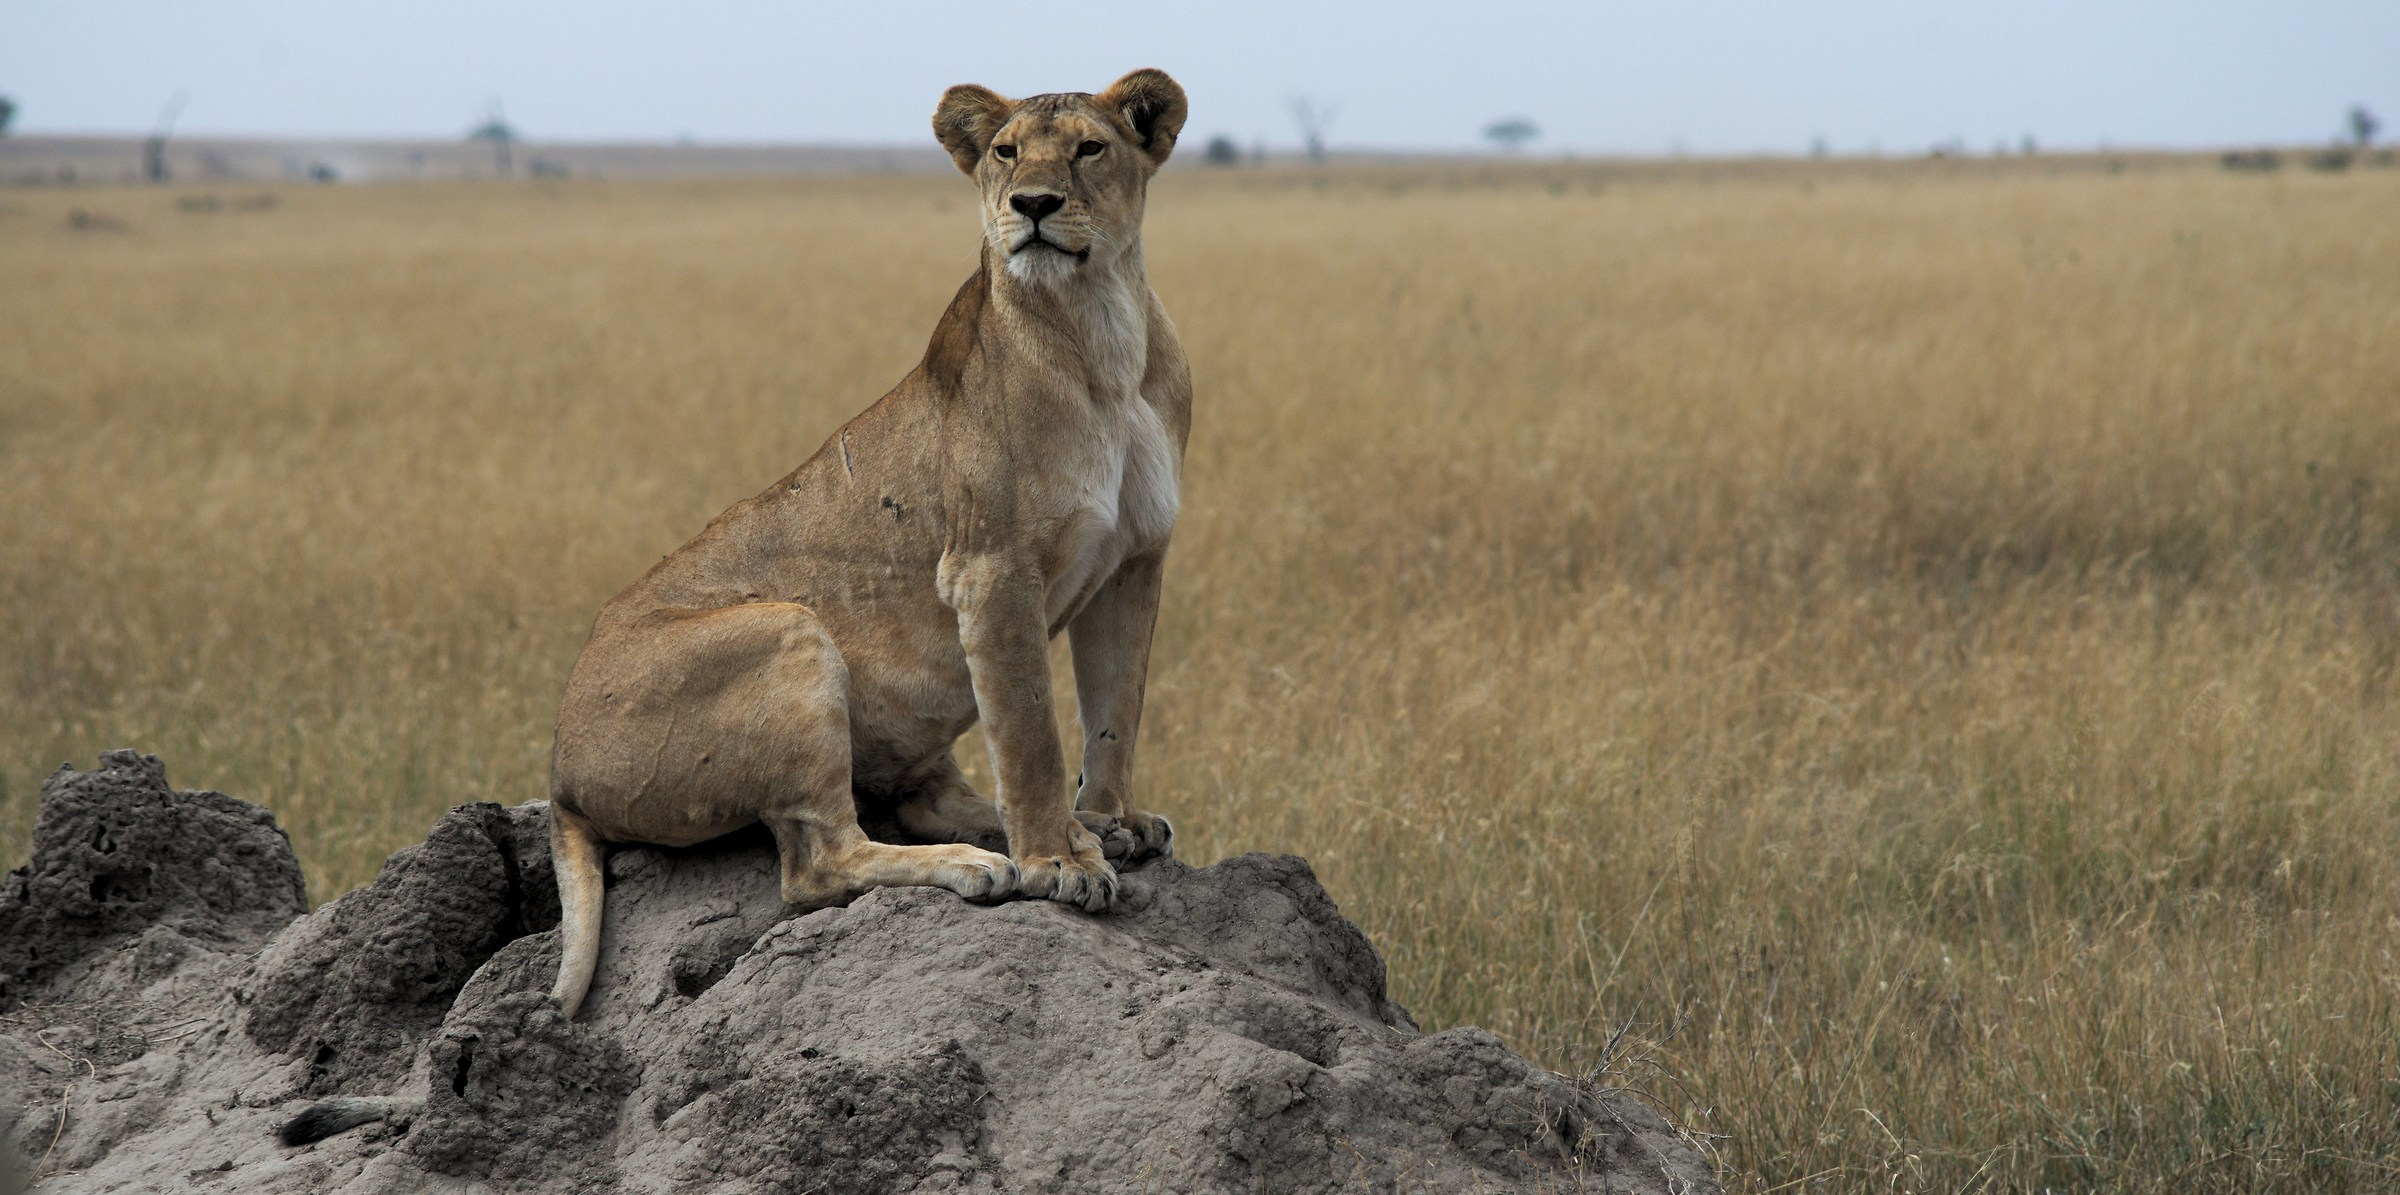 The proud look of the Queen / Serengeti Tanzania...